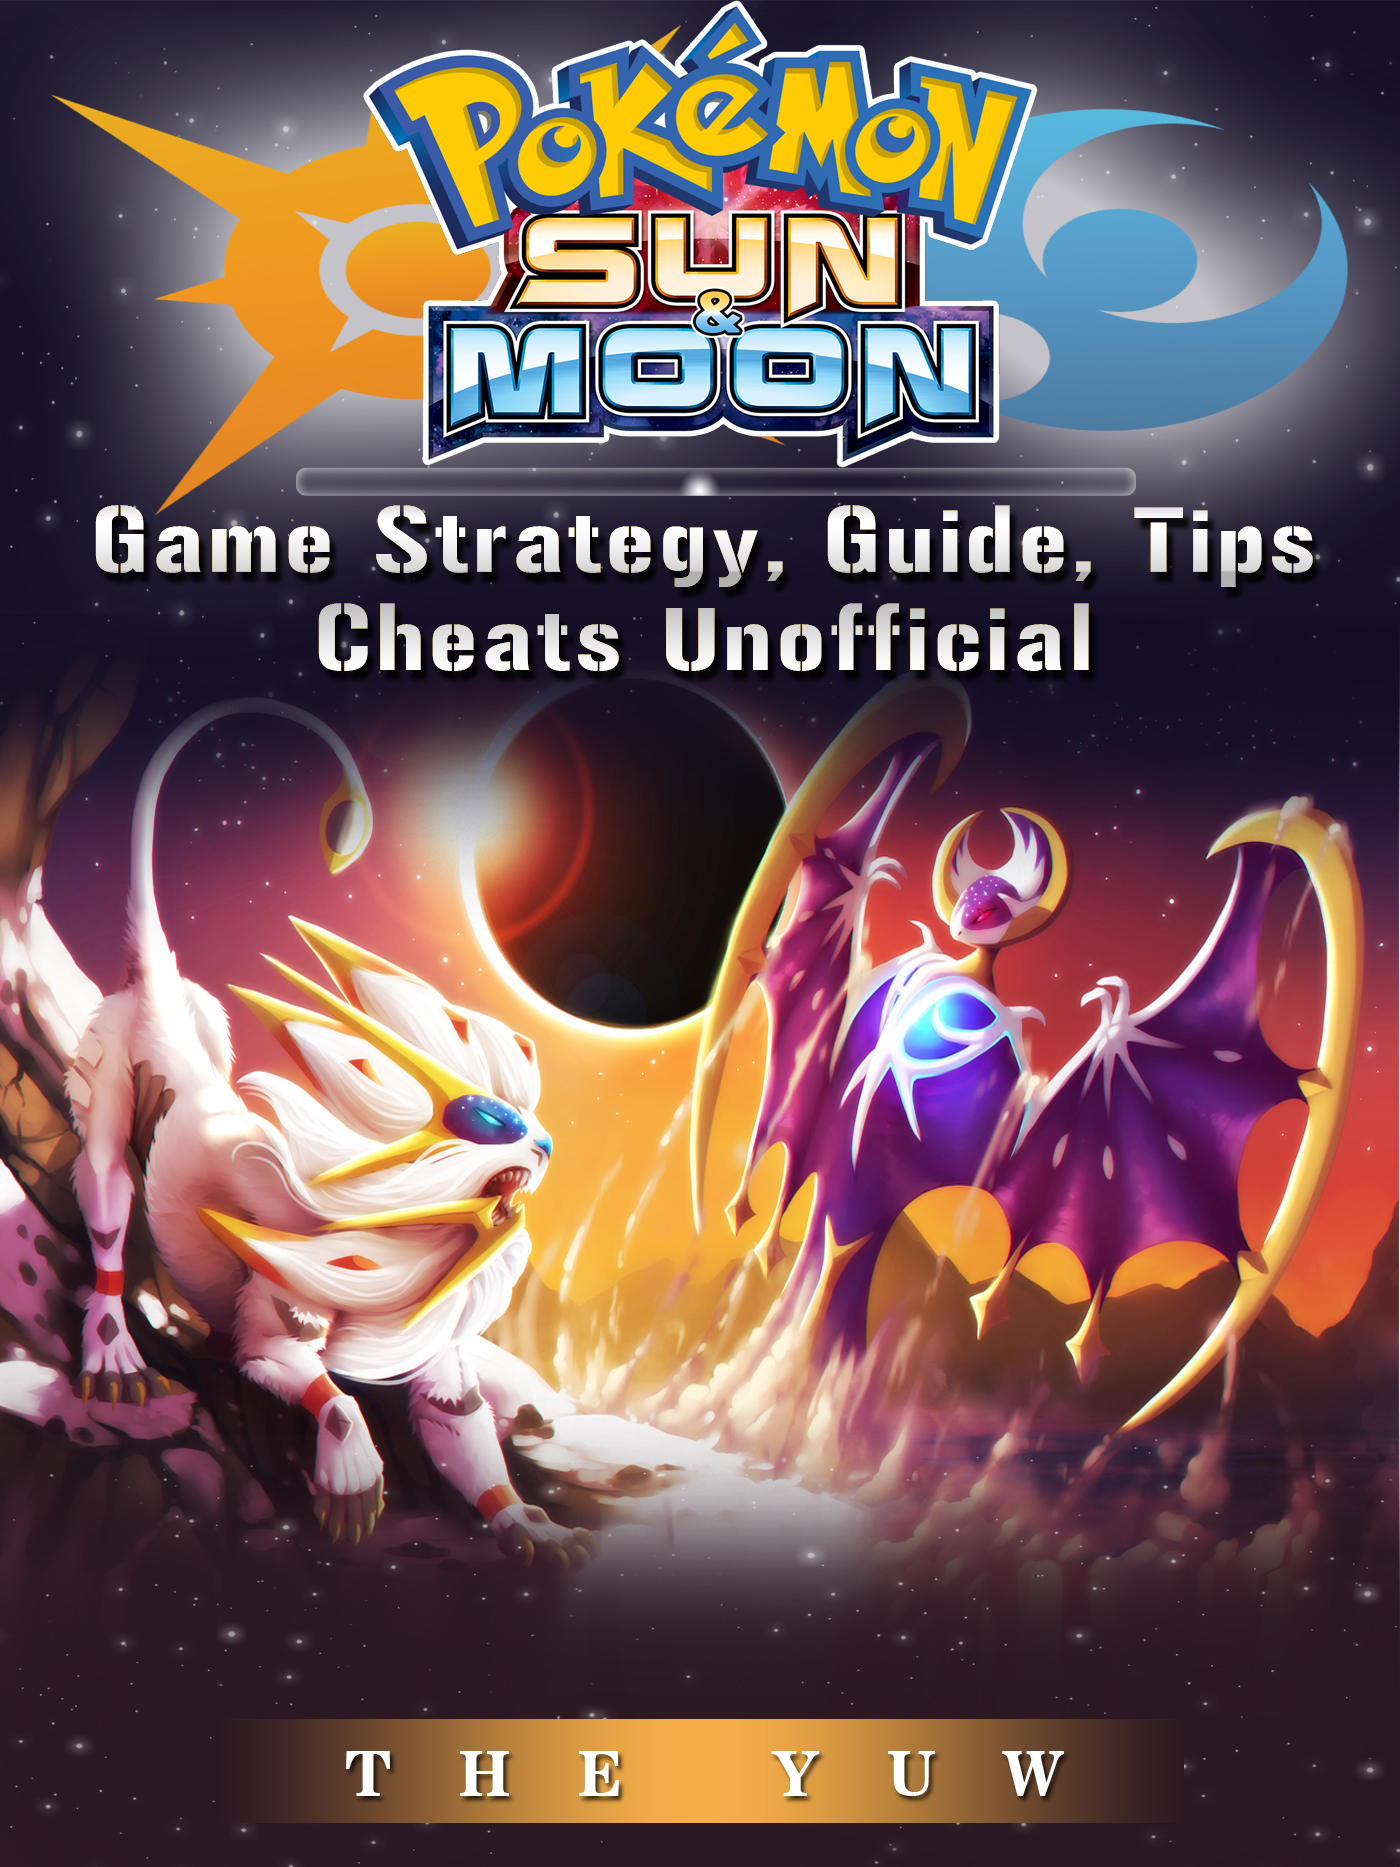 Pokemon Sun & Moon Game Strategy, Guide, Tips Cheats Unofficial By The Yuw